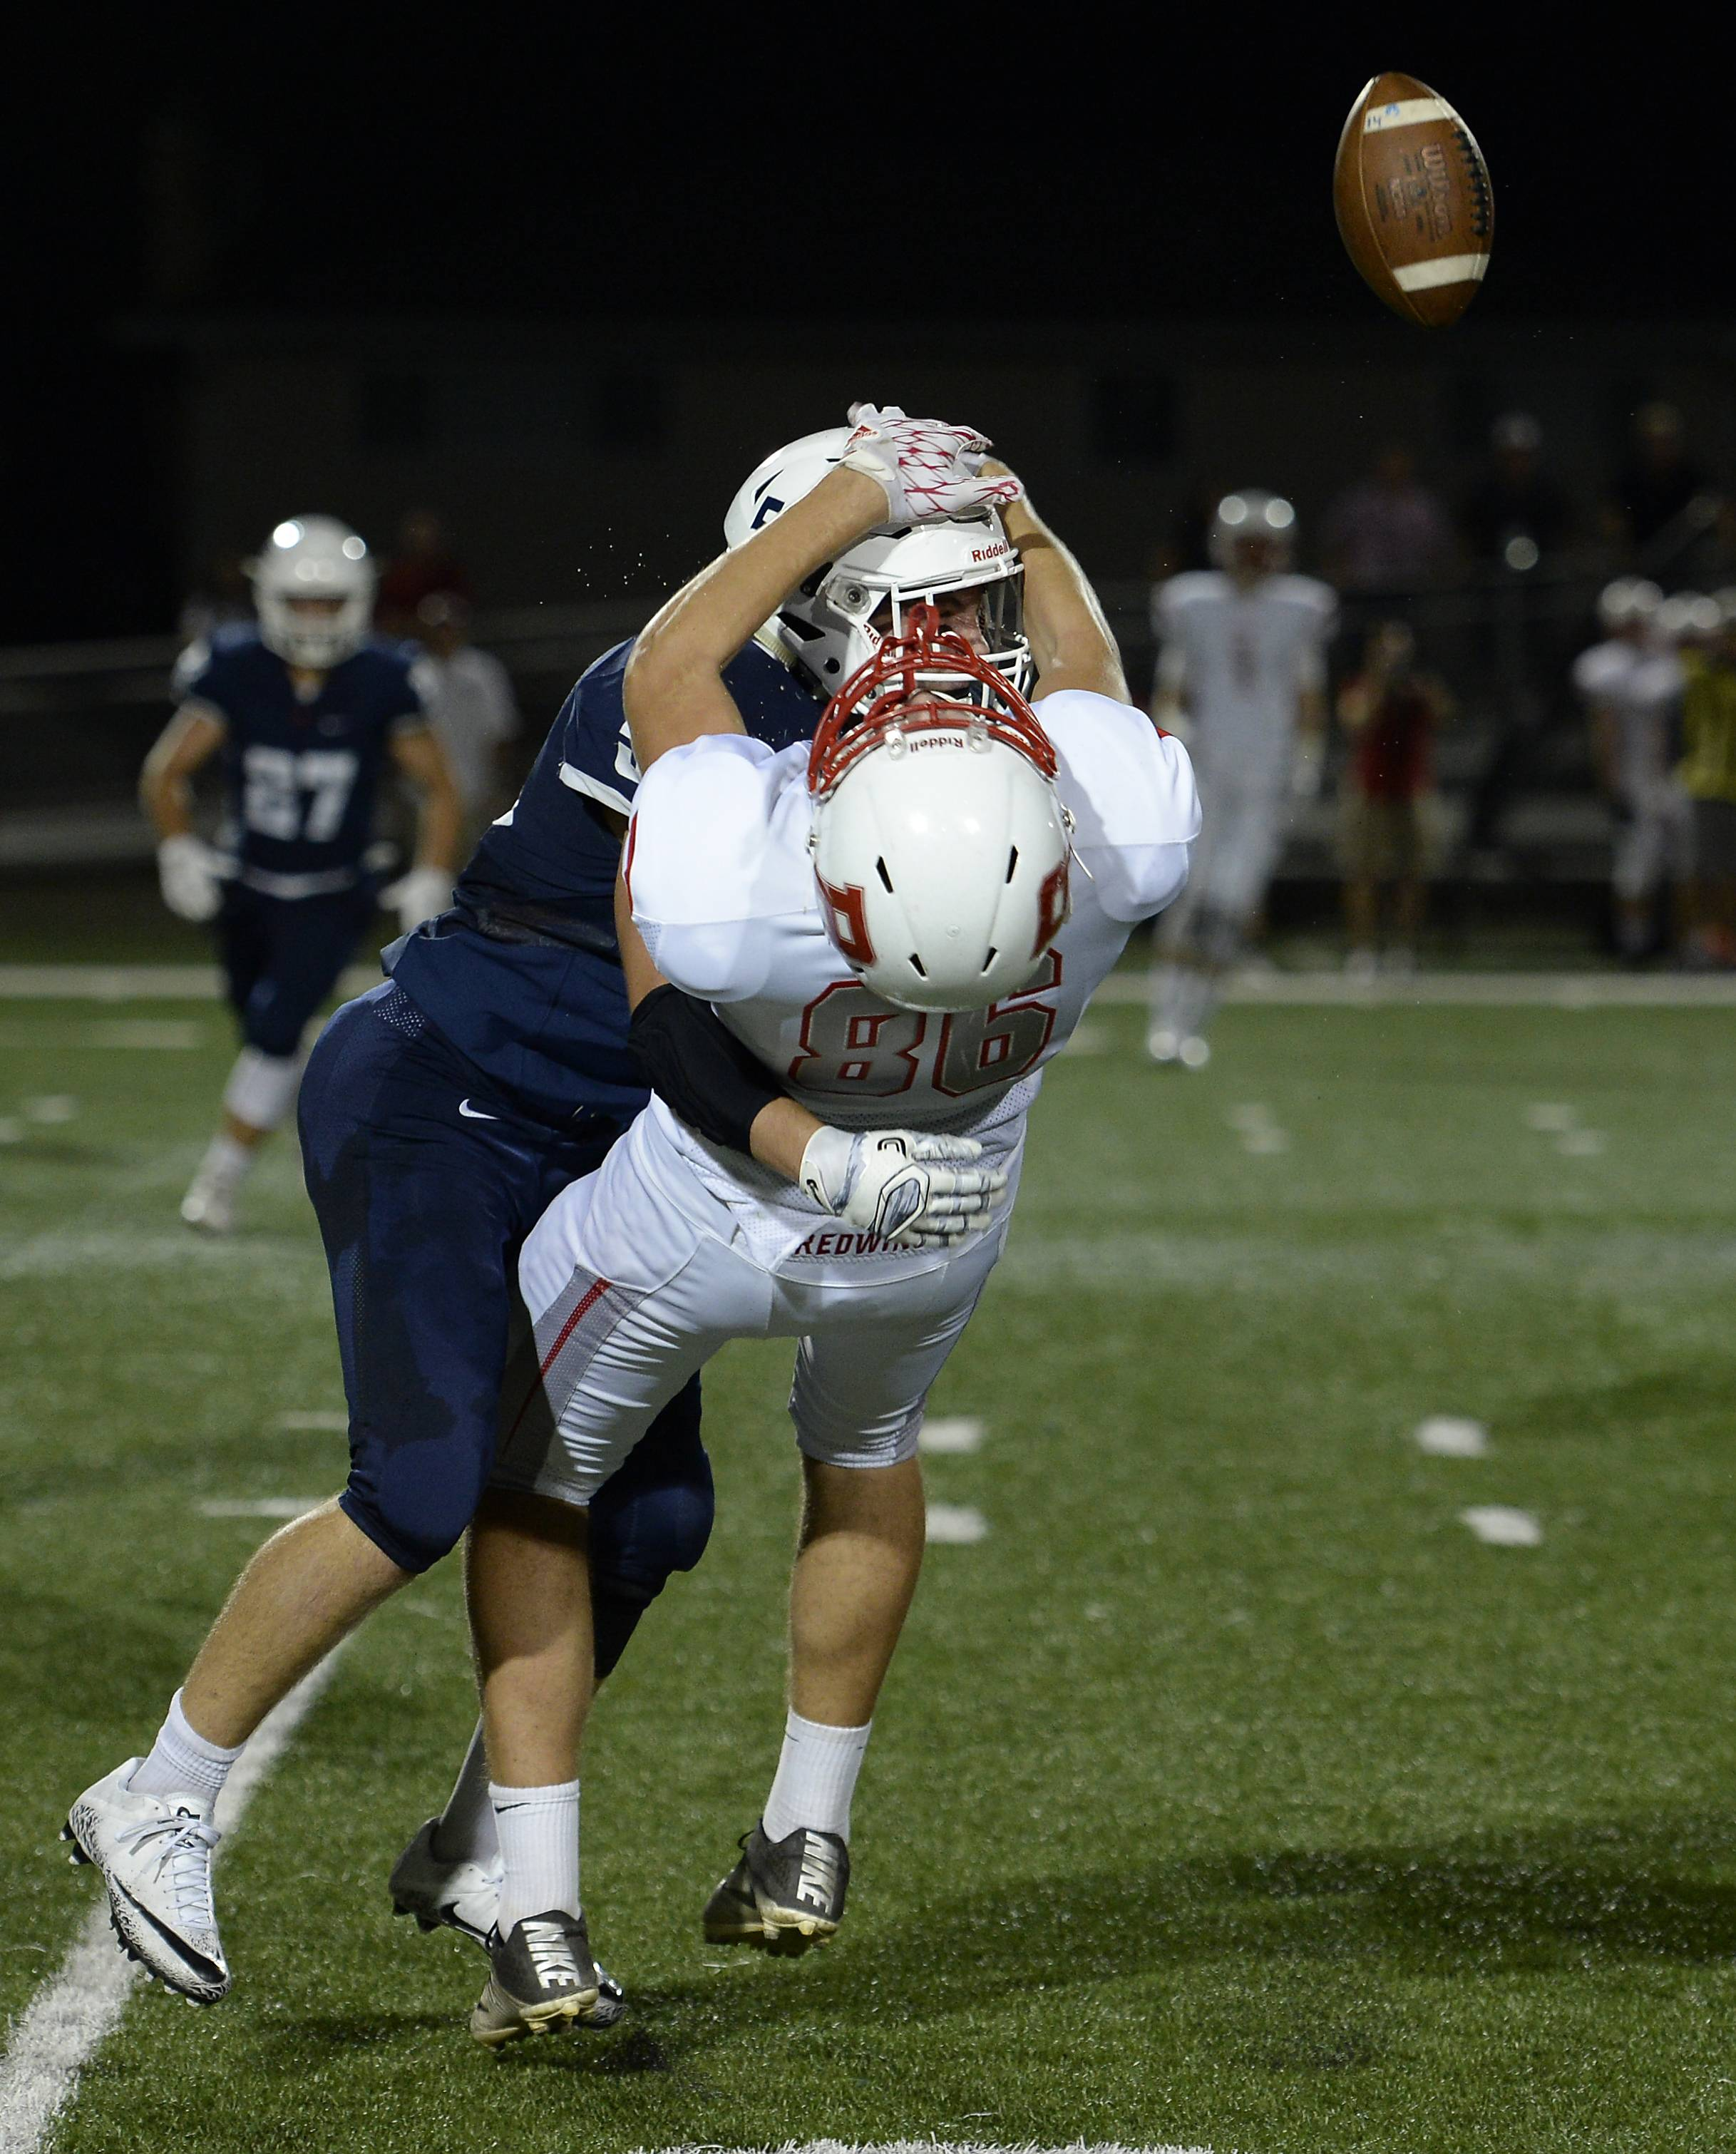 St. Viator's Jake Wolf lays out Benet Academy's Anthony Adams on a pass play during the first half of varsity football on Friday.